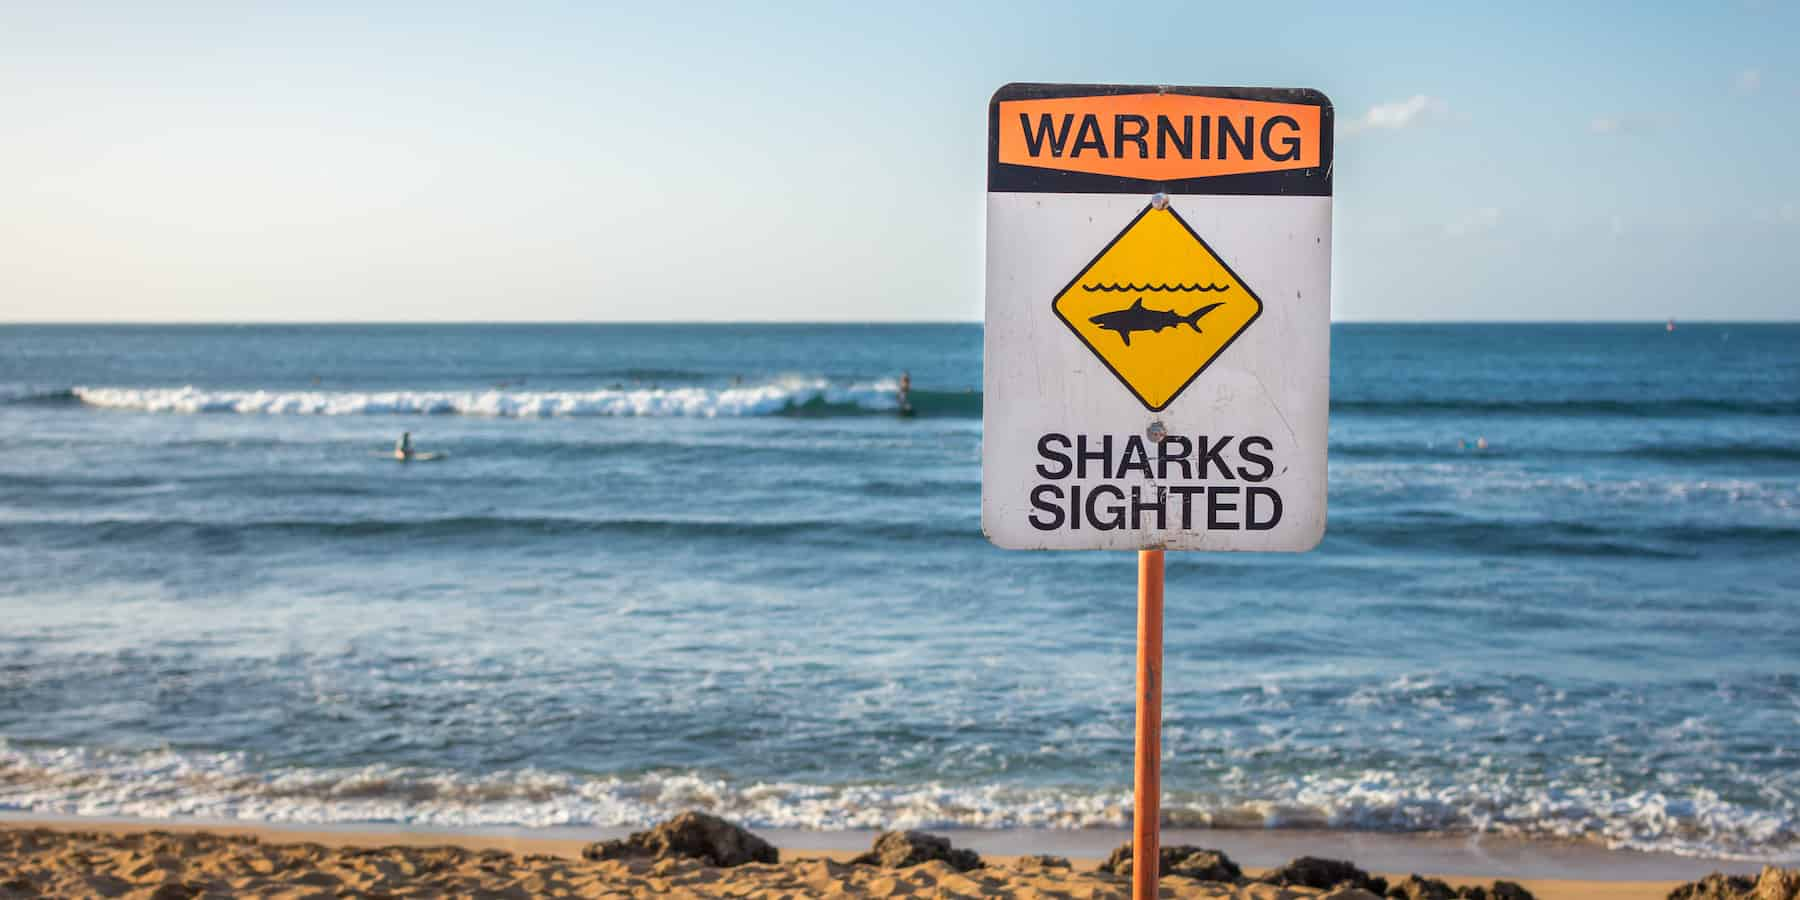 Electricity watchouts sharks sighted